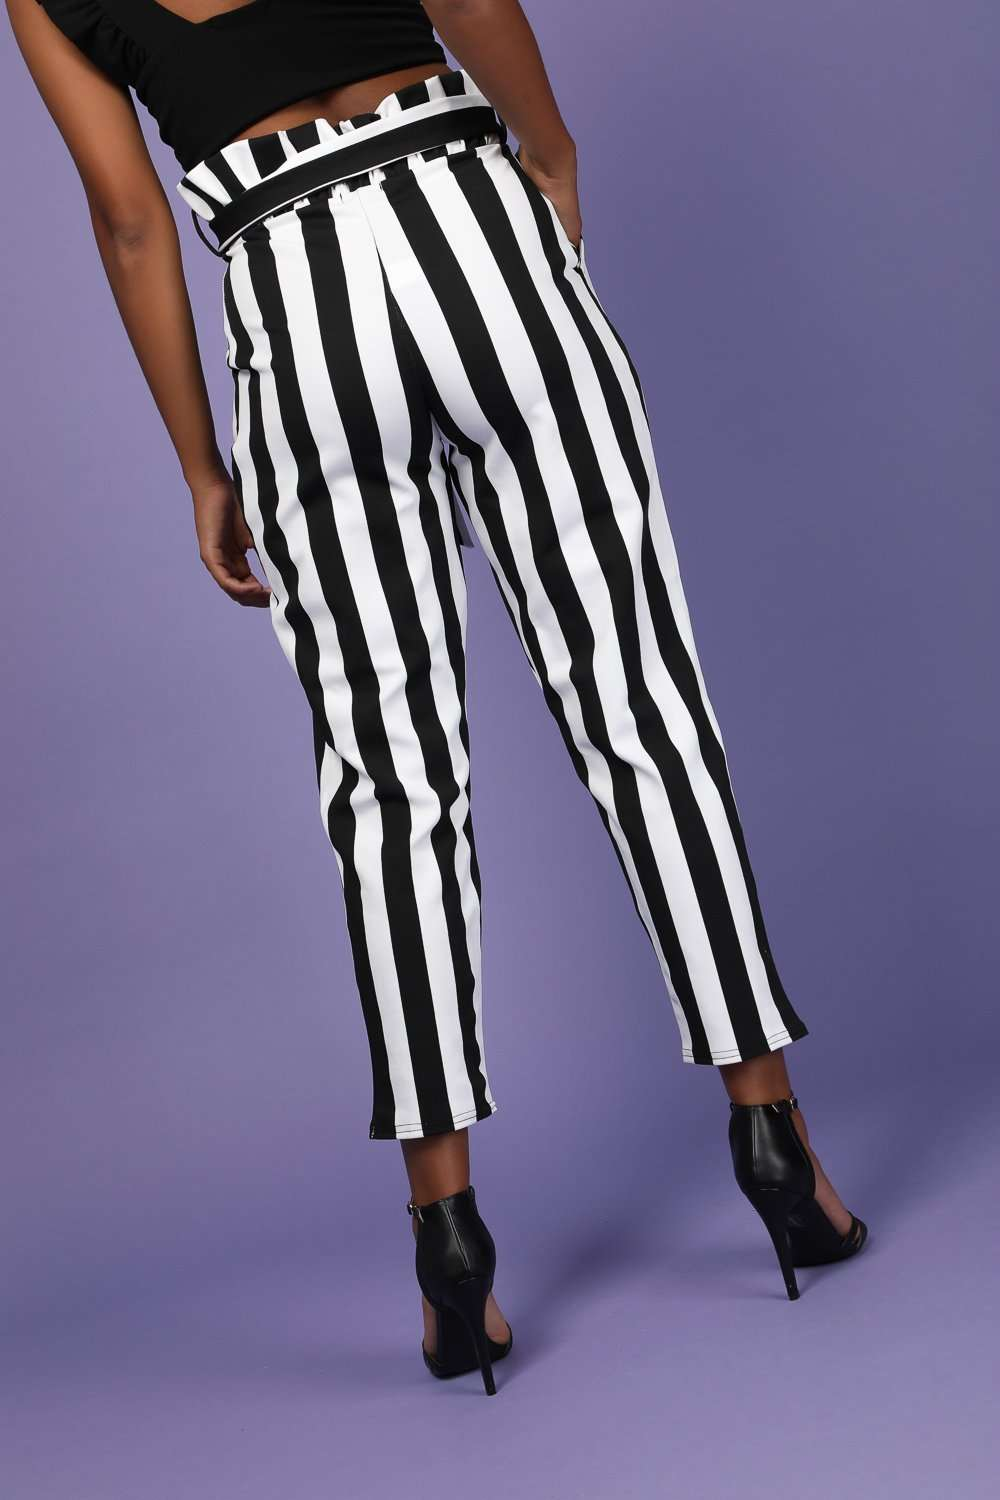 Gina High Waisted Monochrome Paper Bag Trousers - bejealous-com